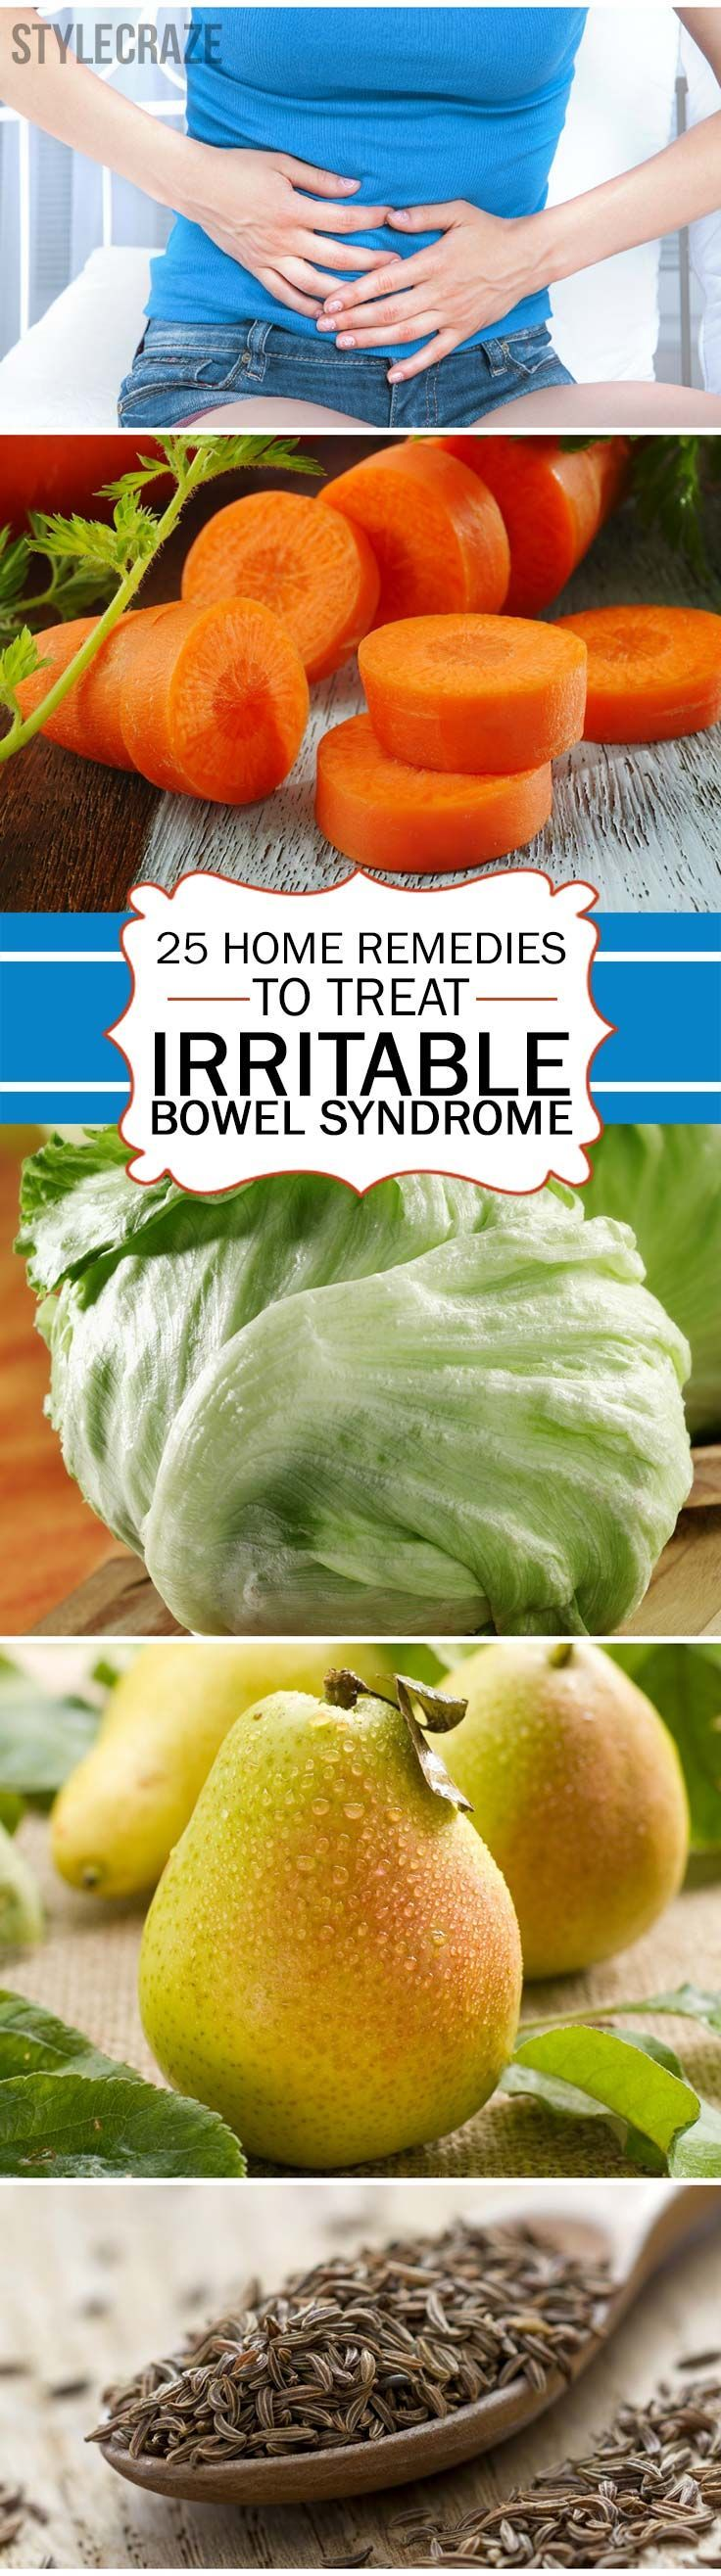 With the kind of food we consume and the environment we live in, abdominal problems have become common. But irritable bowel syndrome? How common can it get? Here is all you need to know about it and how to get IBS relief.